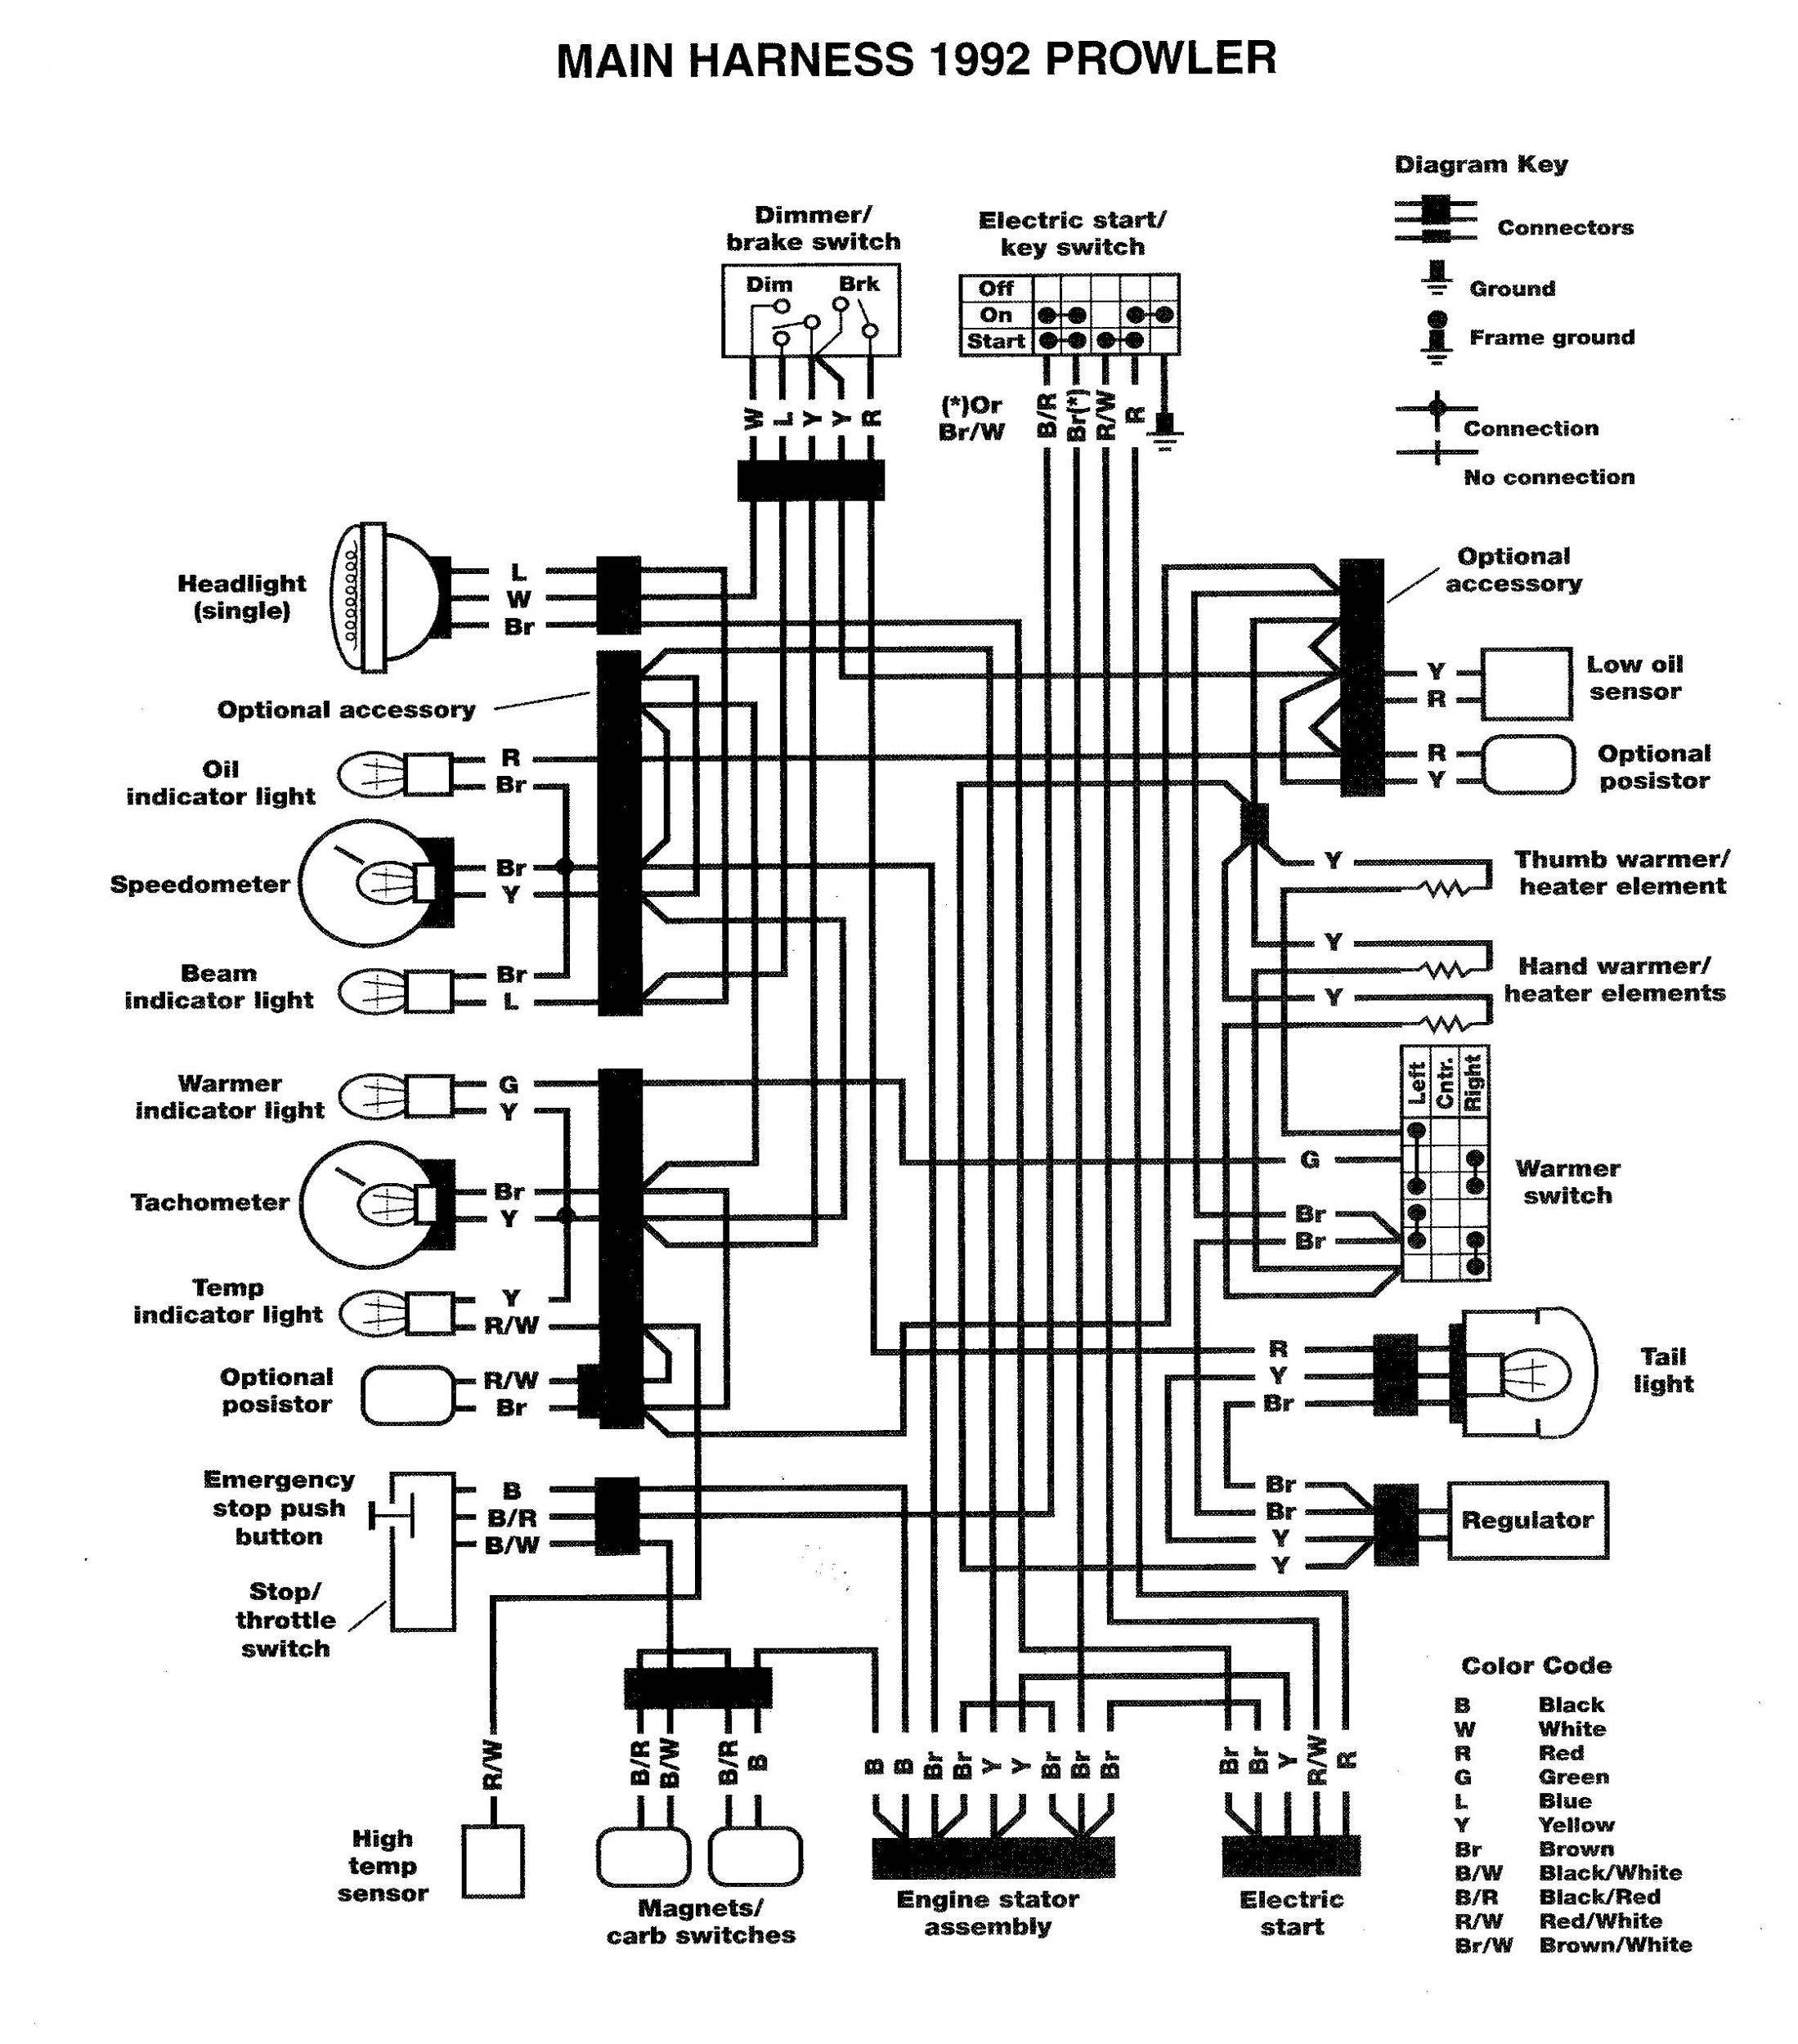 98 Kawasaki 300 Wiring Diagram - Wiring Diagram All fat-credibility -  fat-credibility.huevoprint.it | 2005 Kawasaki Bayou Wiring Diagram |  | Huevoprint